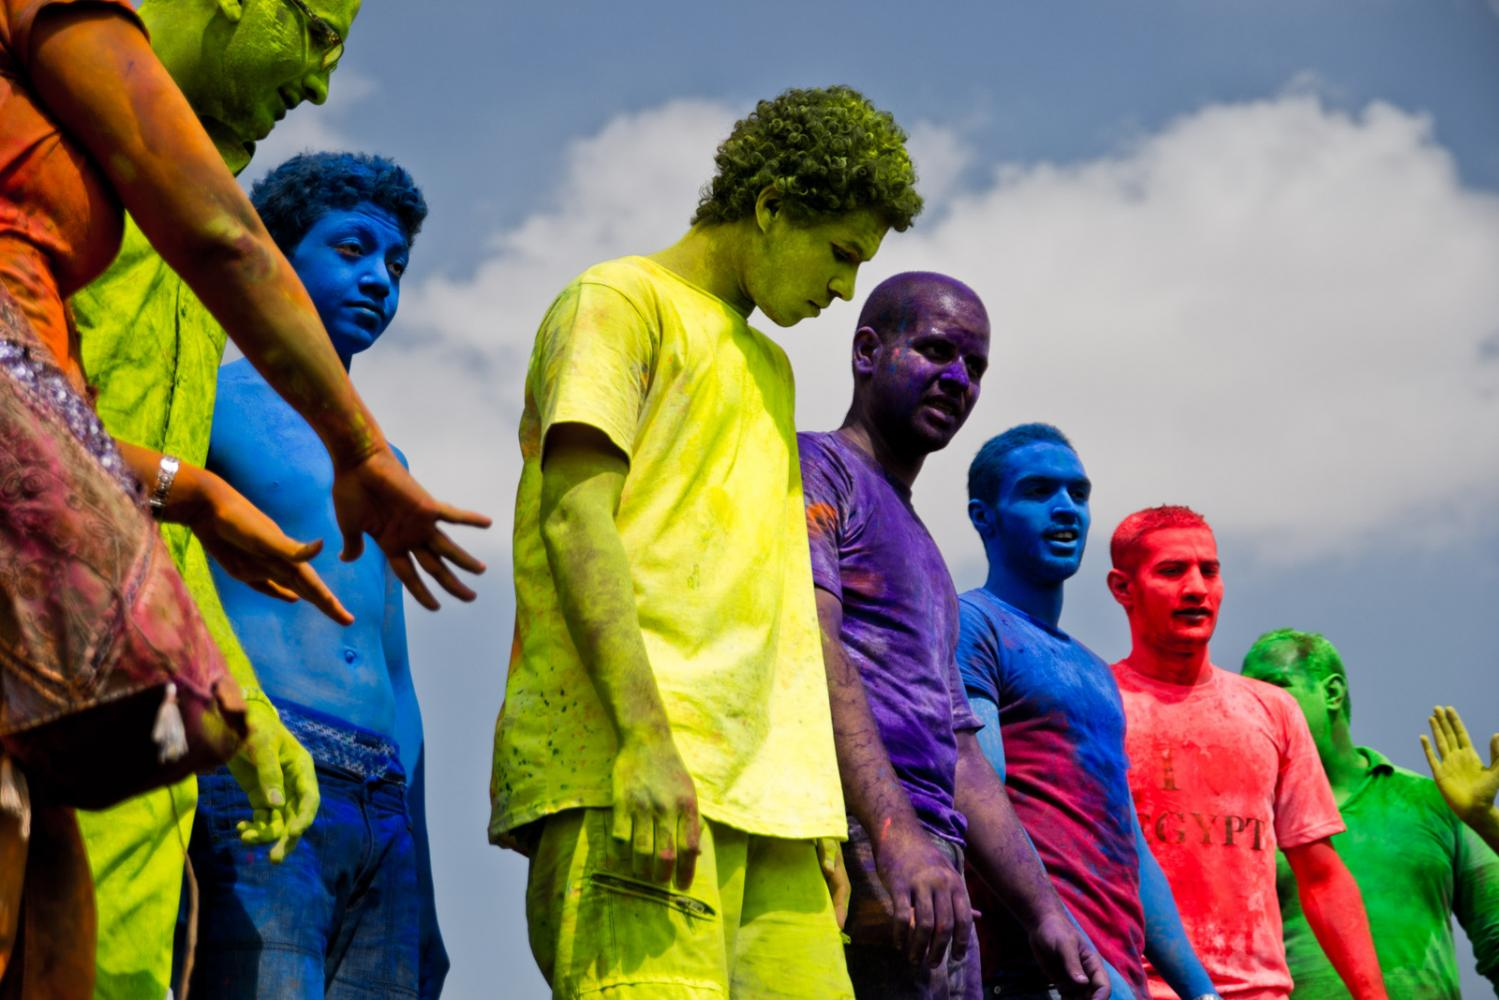 Egyptian teens participate in a color festival in Cairo